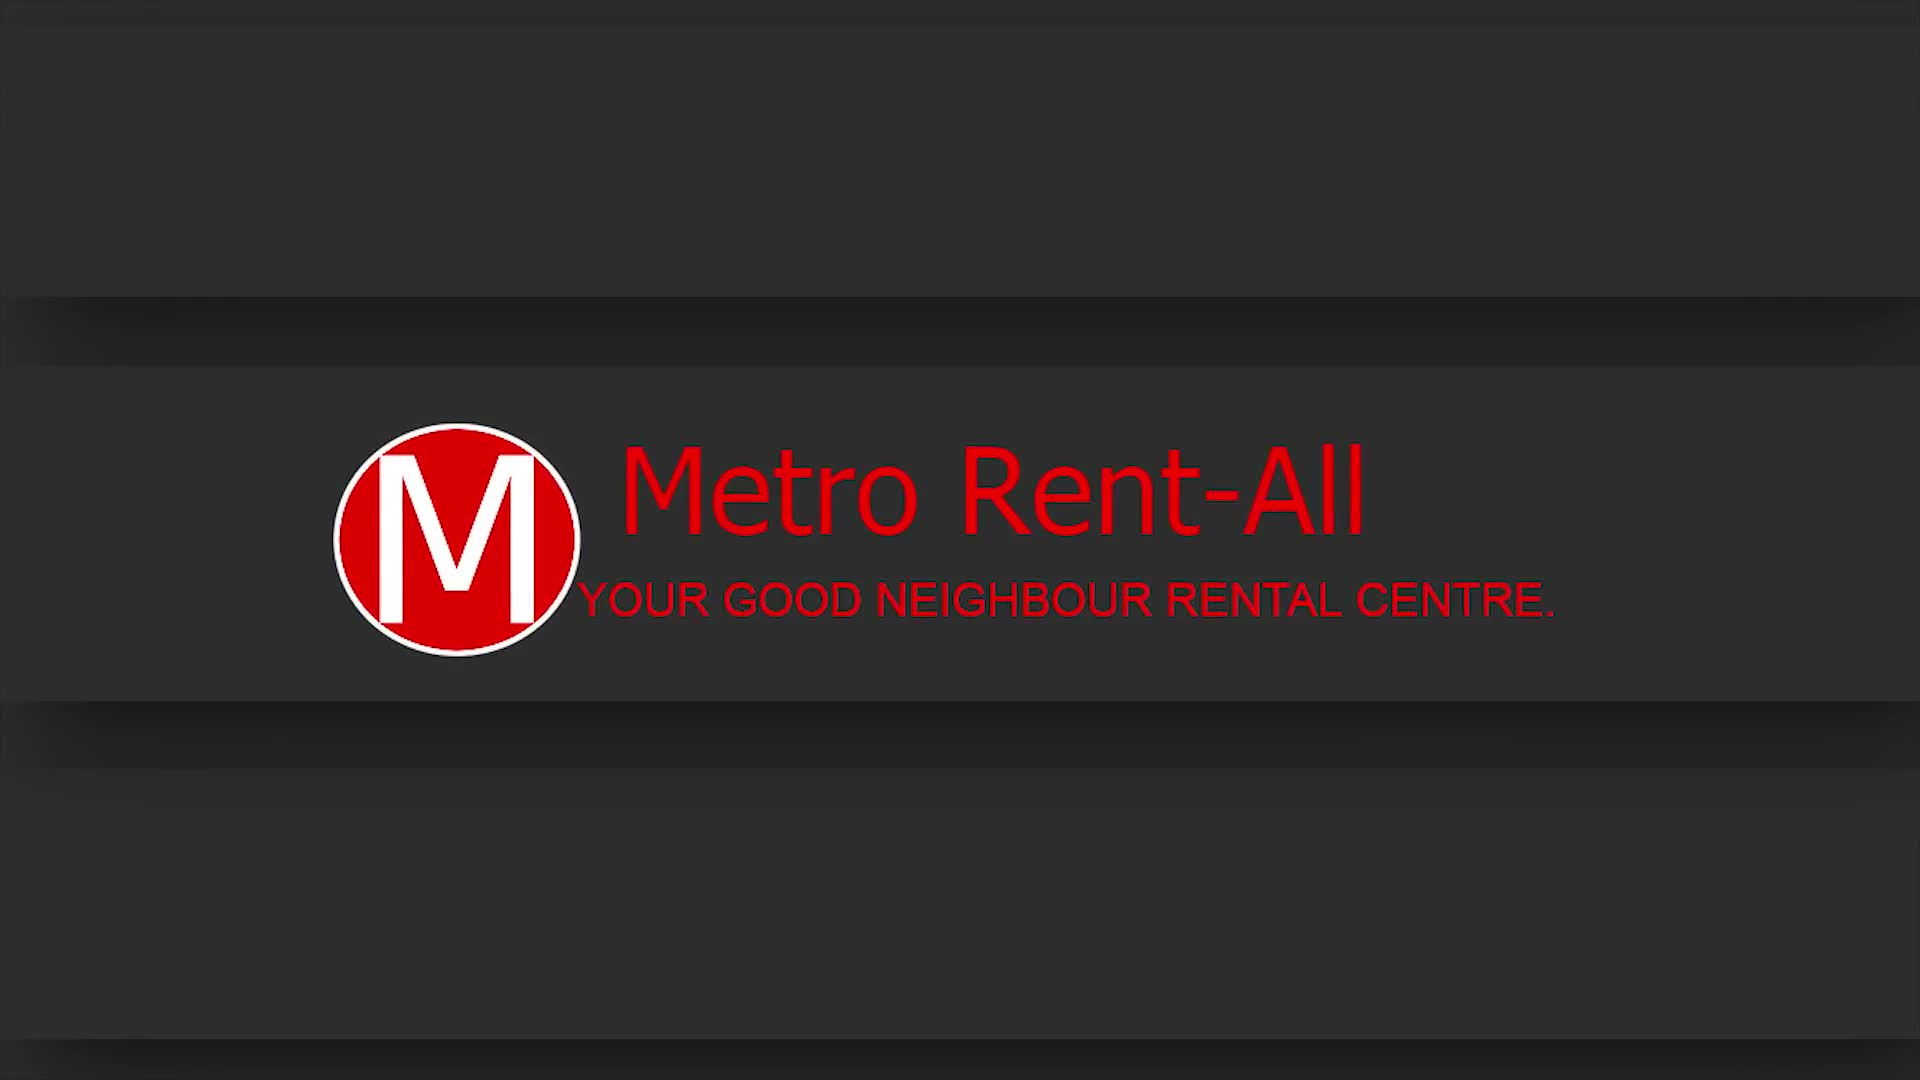 Metro Rent-All Limited - General Rental Service - 416-291-2521